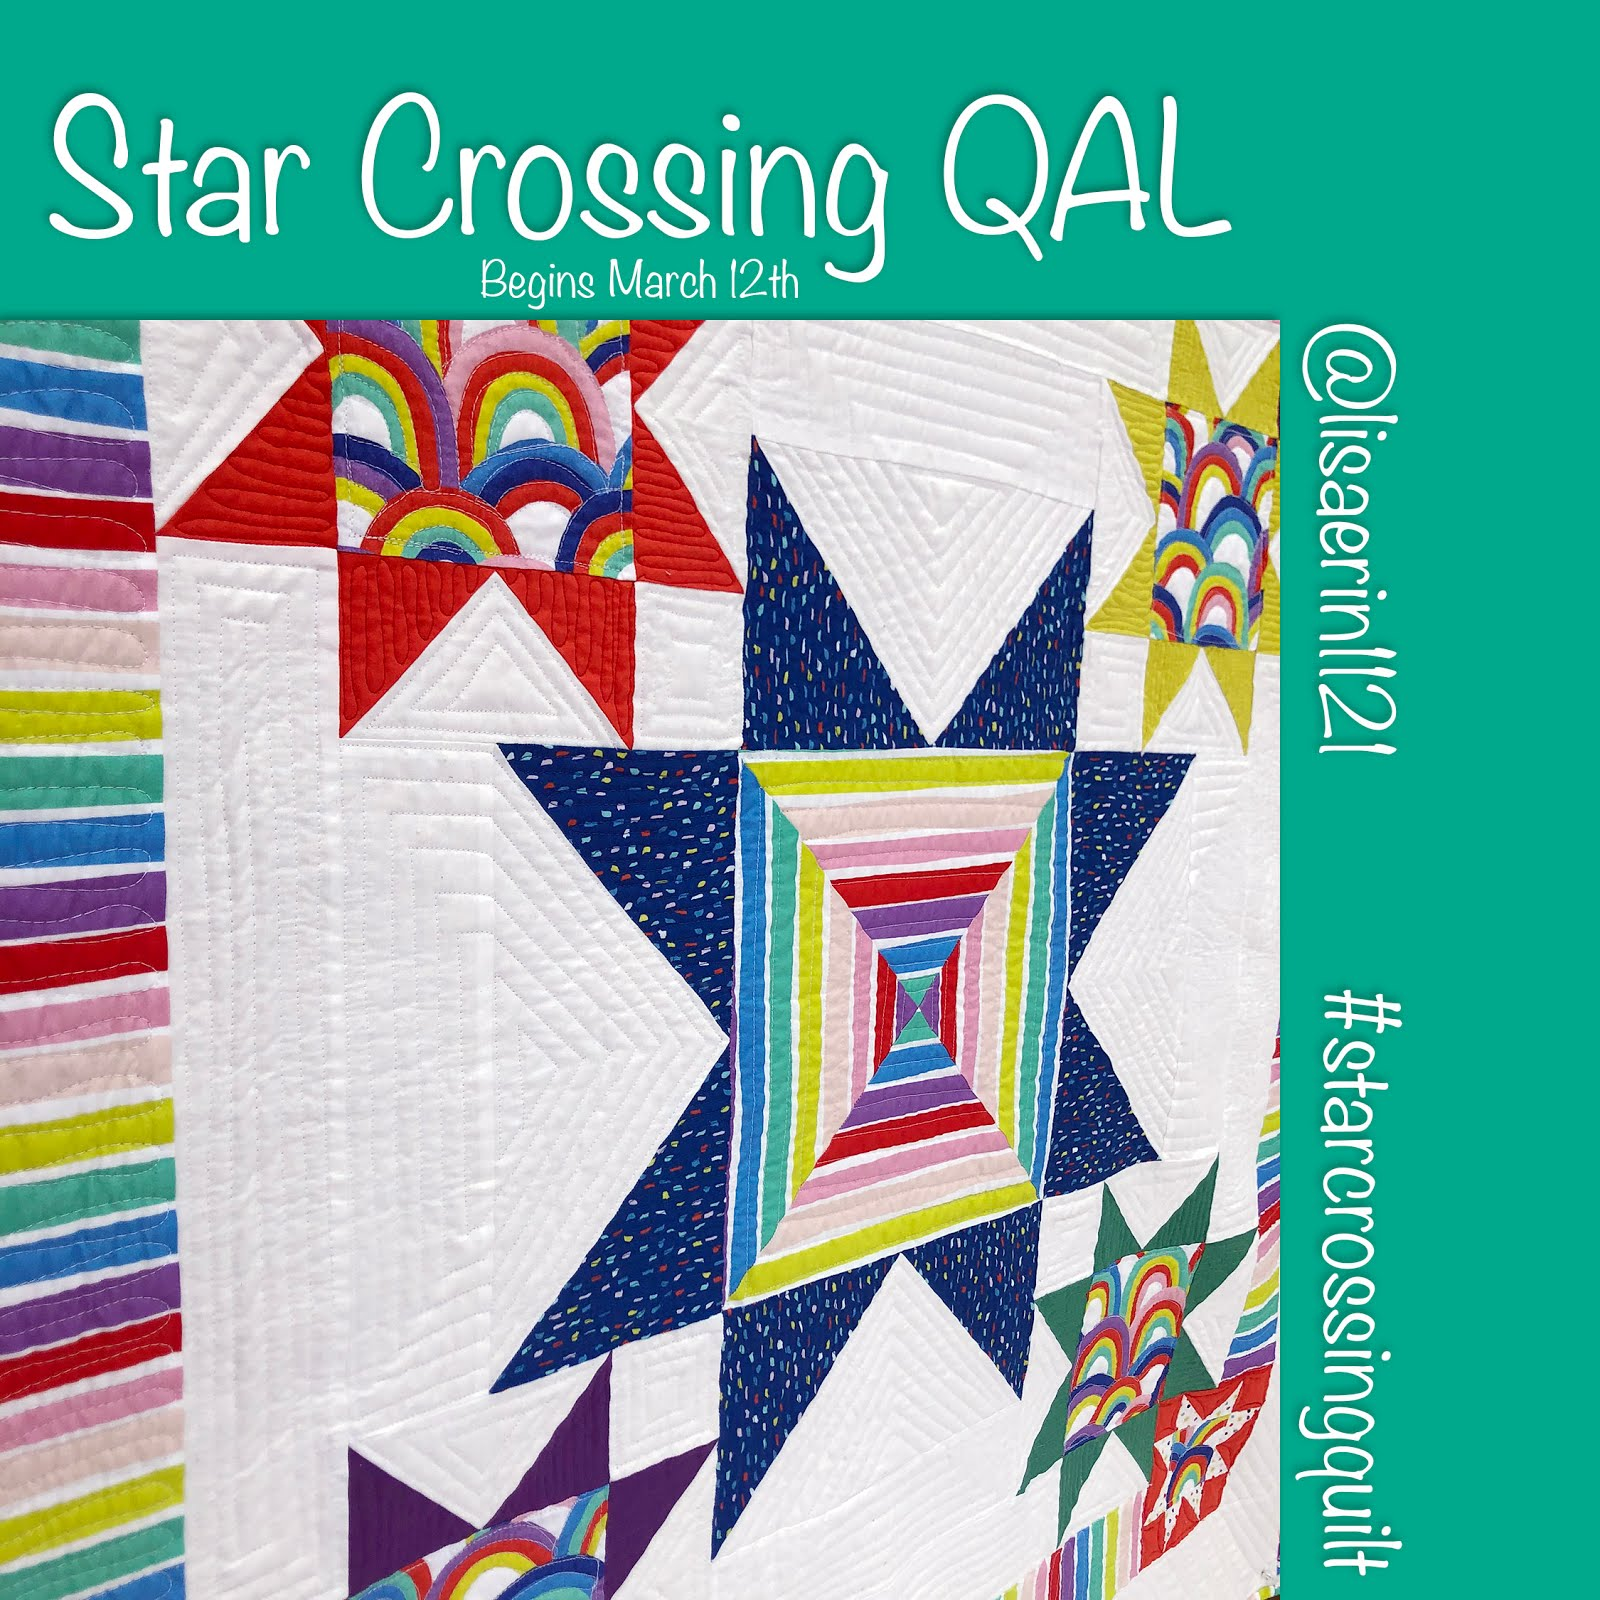 Star Crossing QAL